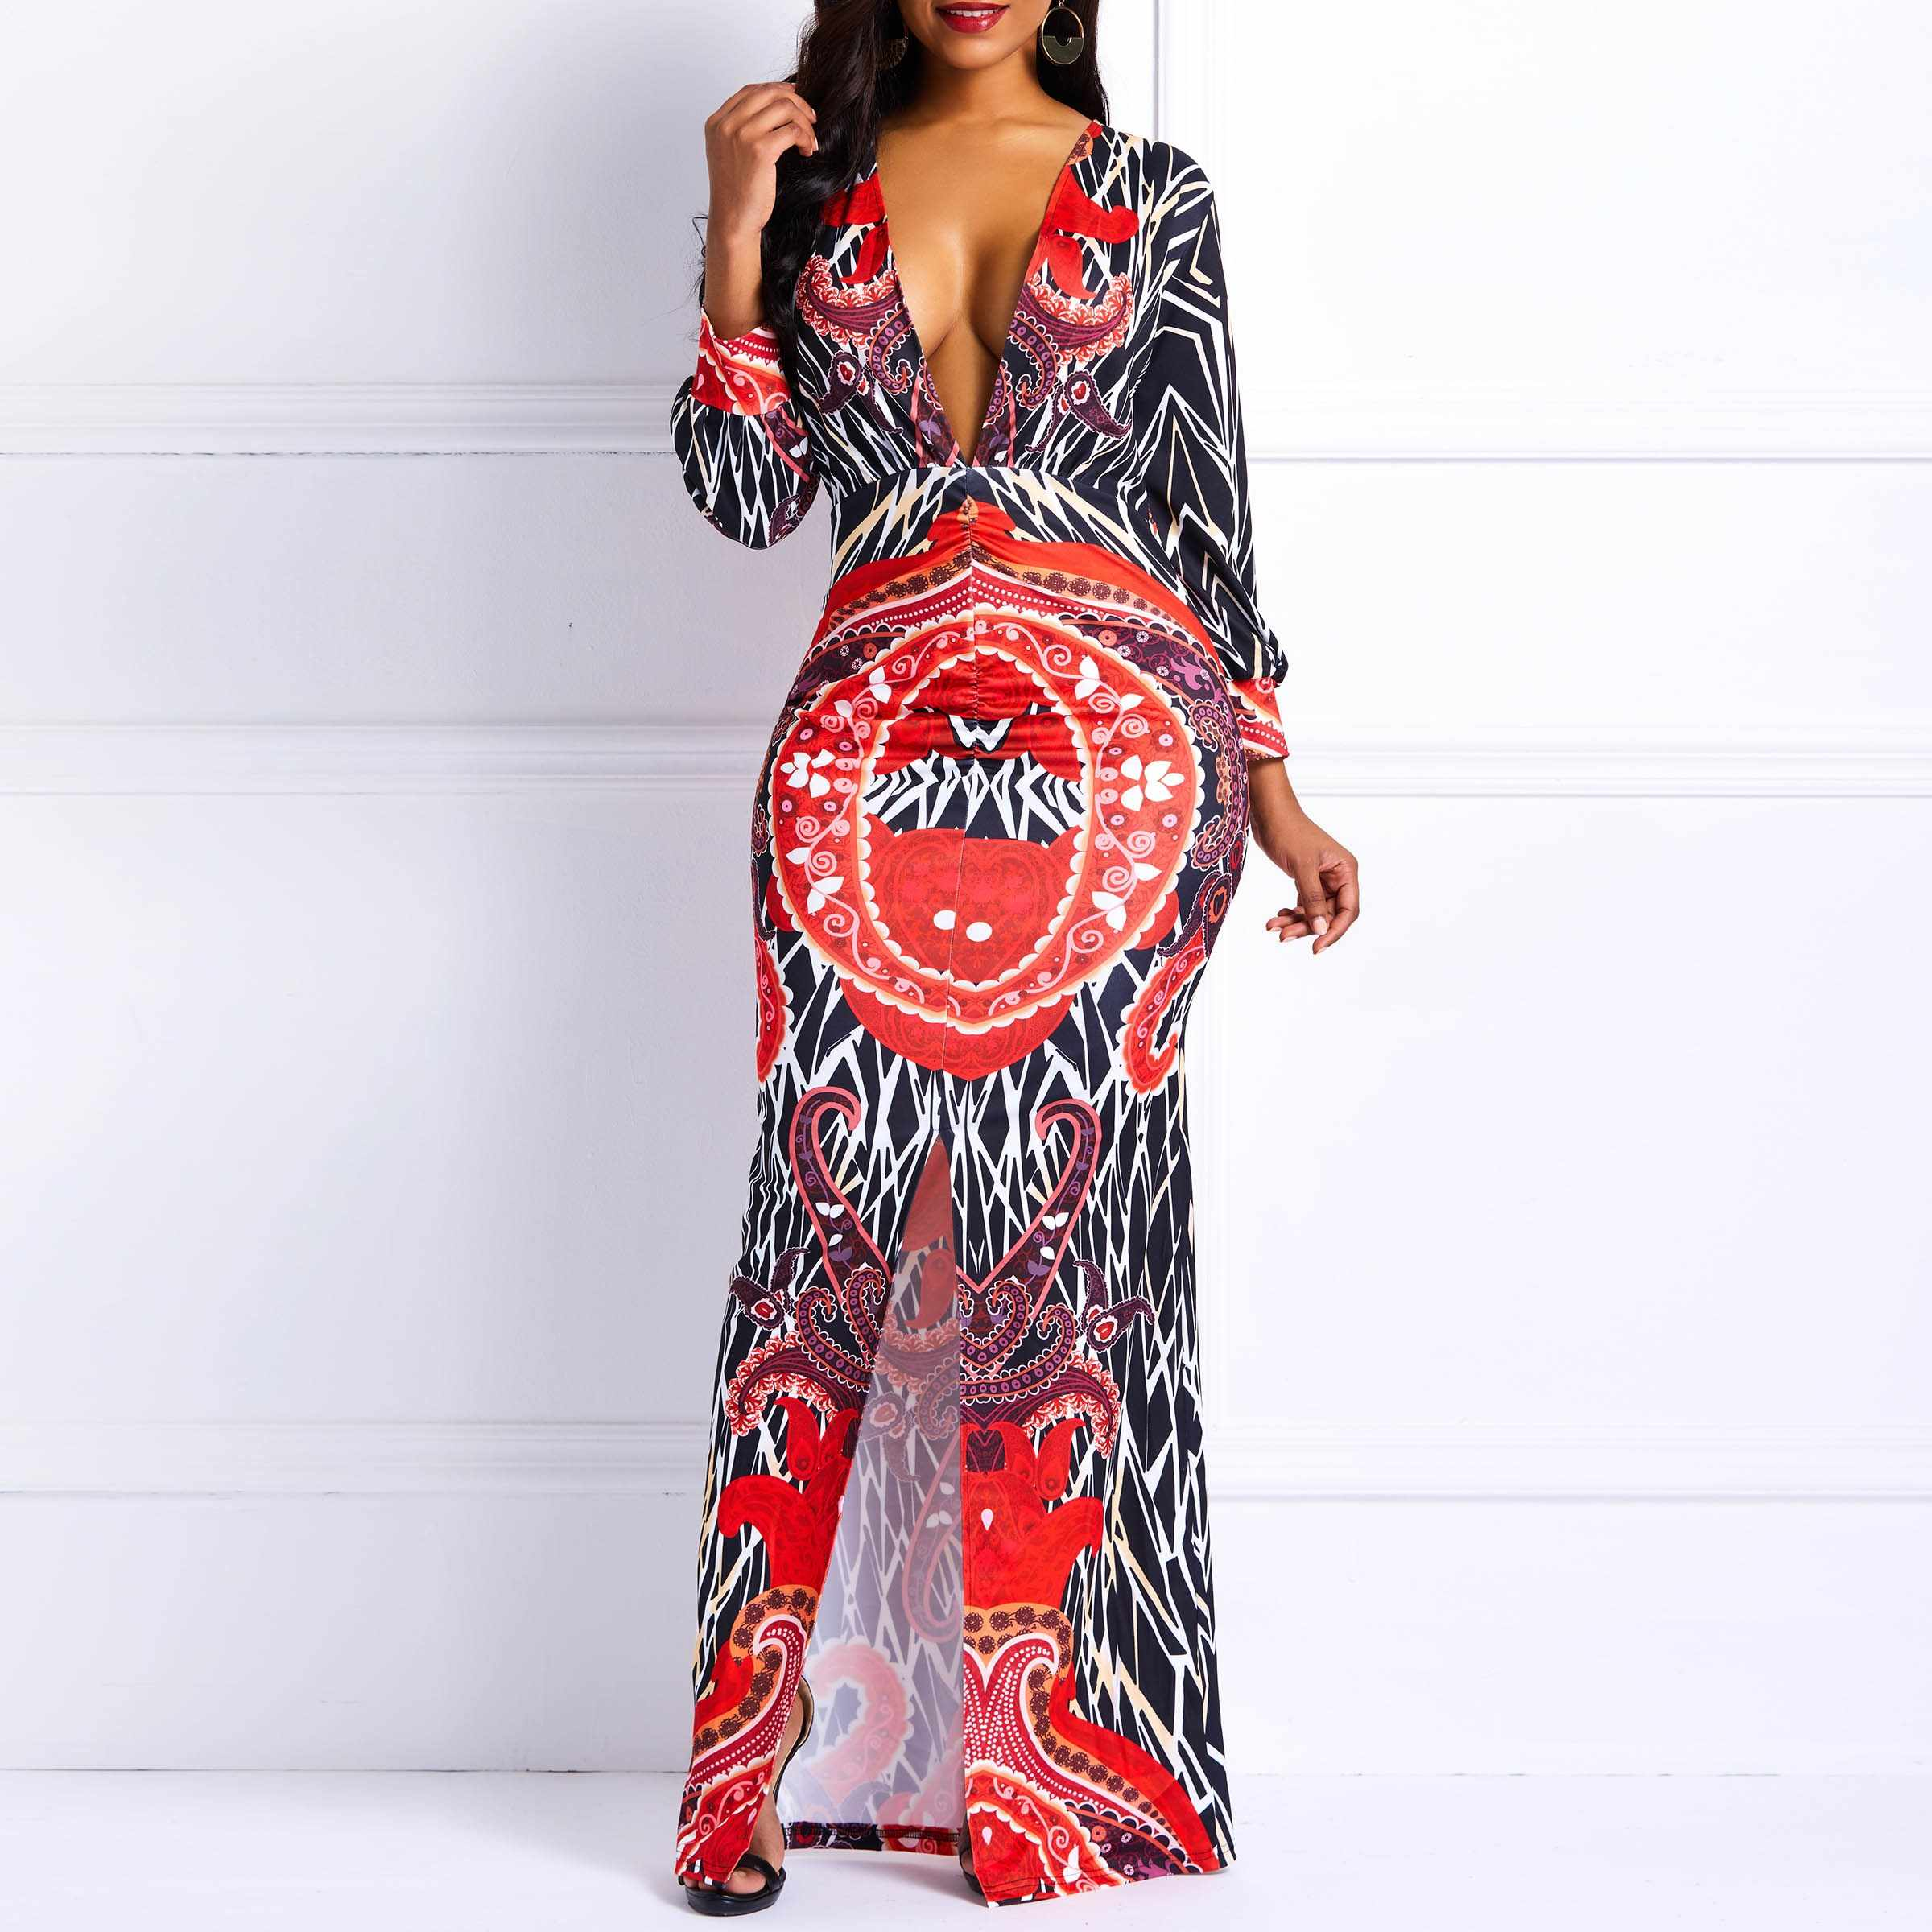 99c259afc5550 Detail Feedback Questions about Clocolor African Dress Plus Size ...